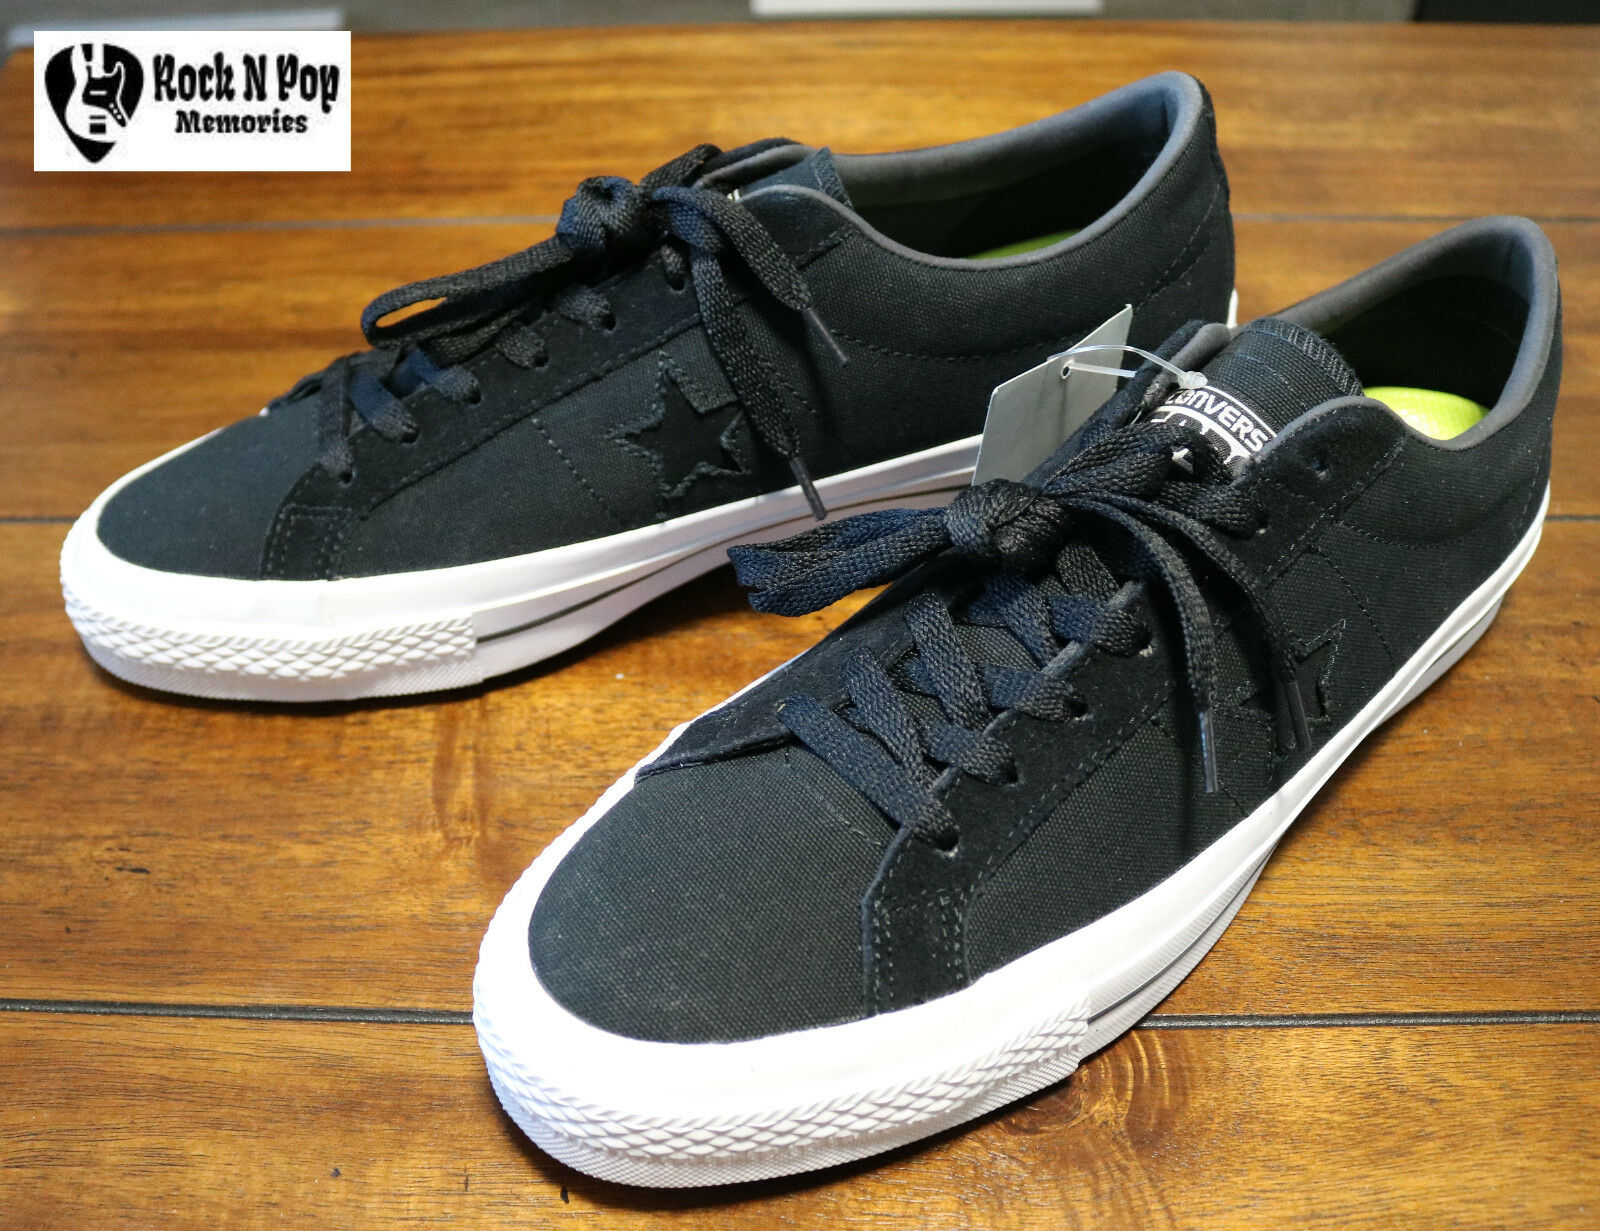 0d56784c8fe4 Men s Converse CONS One Star Canvas OX Black White Suede Casual Shoes  153710C